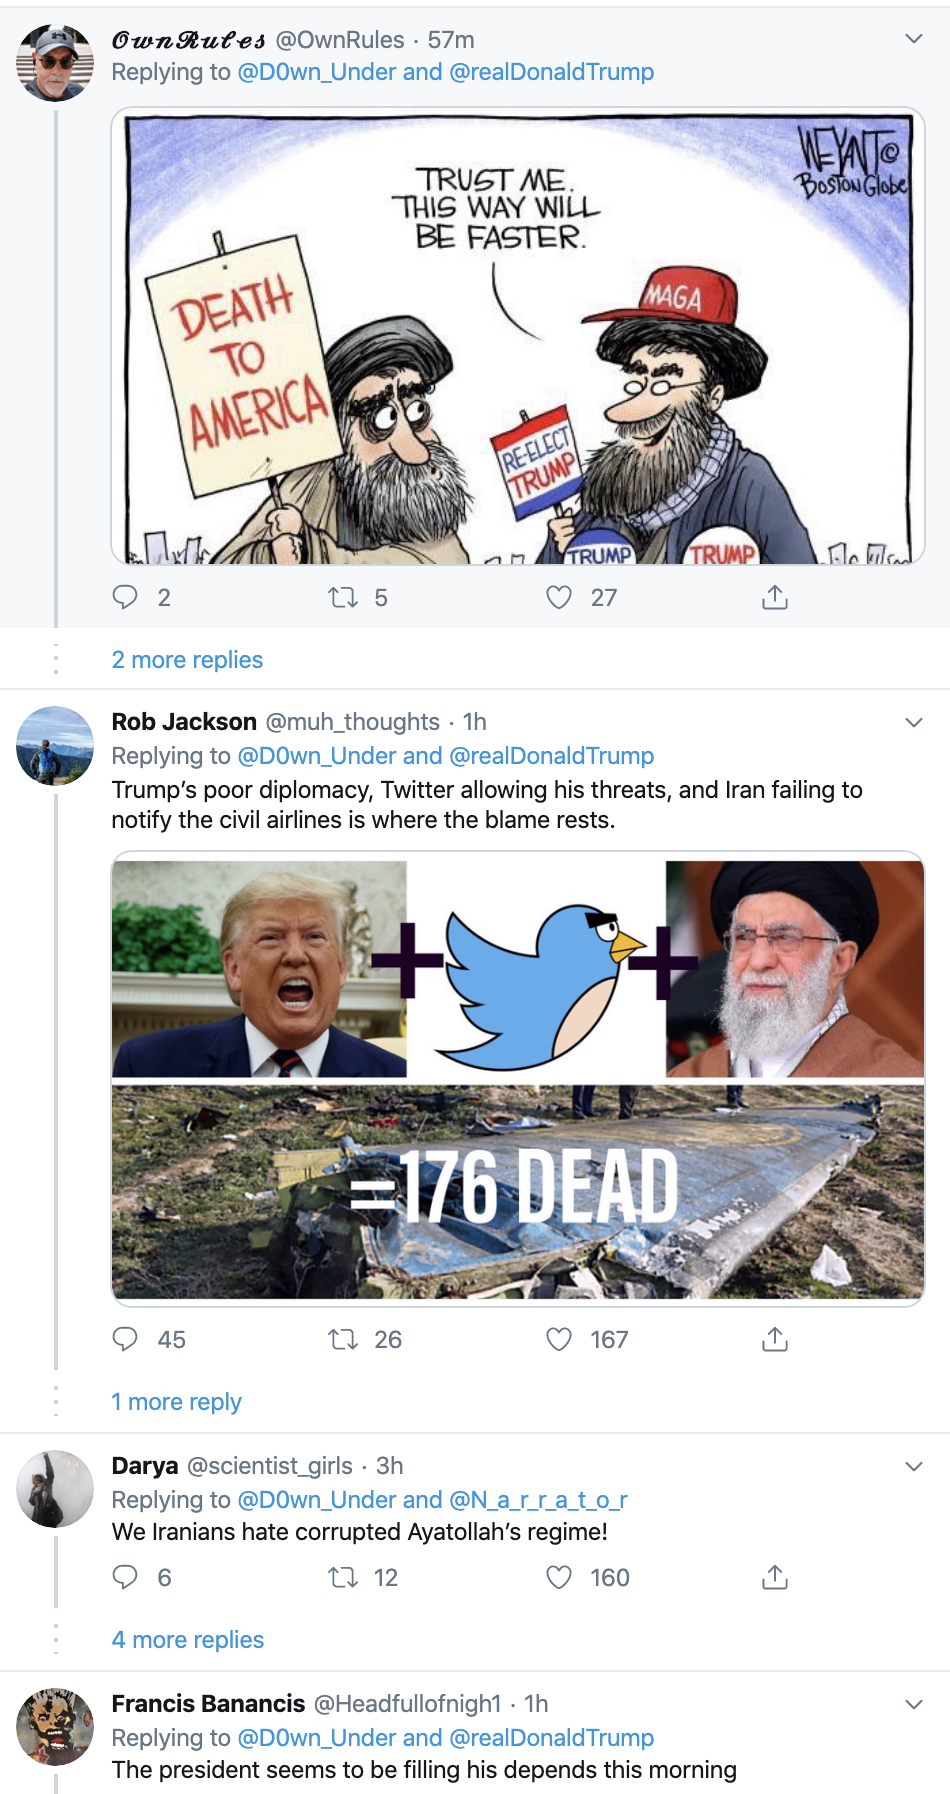 Screen-Shot-2020-01-13-at-9.25.22-AM People Flip Out After Trump Tweets Racist Anti-Muslim Meme Election 2020 Featured Impeachment Religion Top Stories